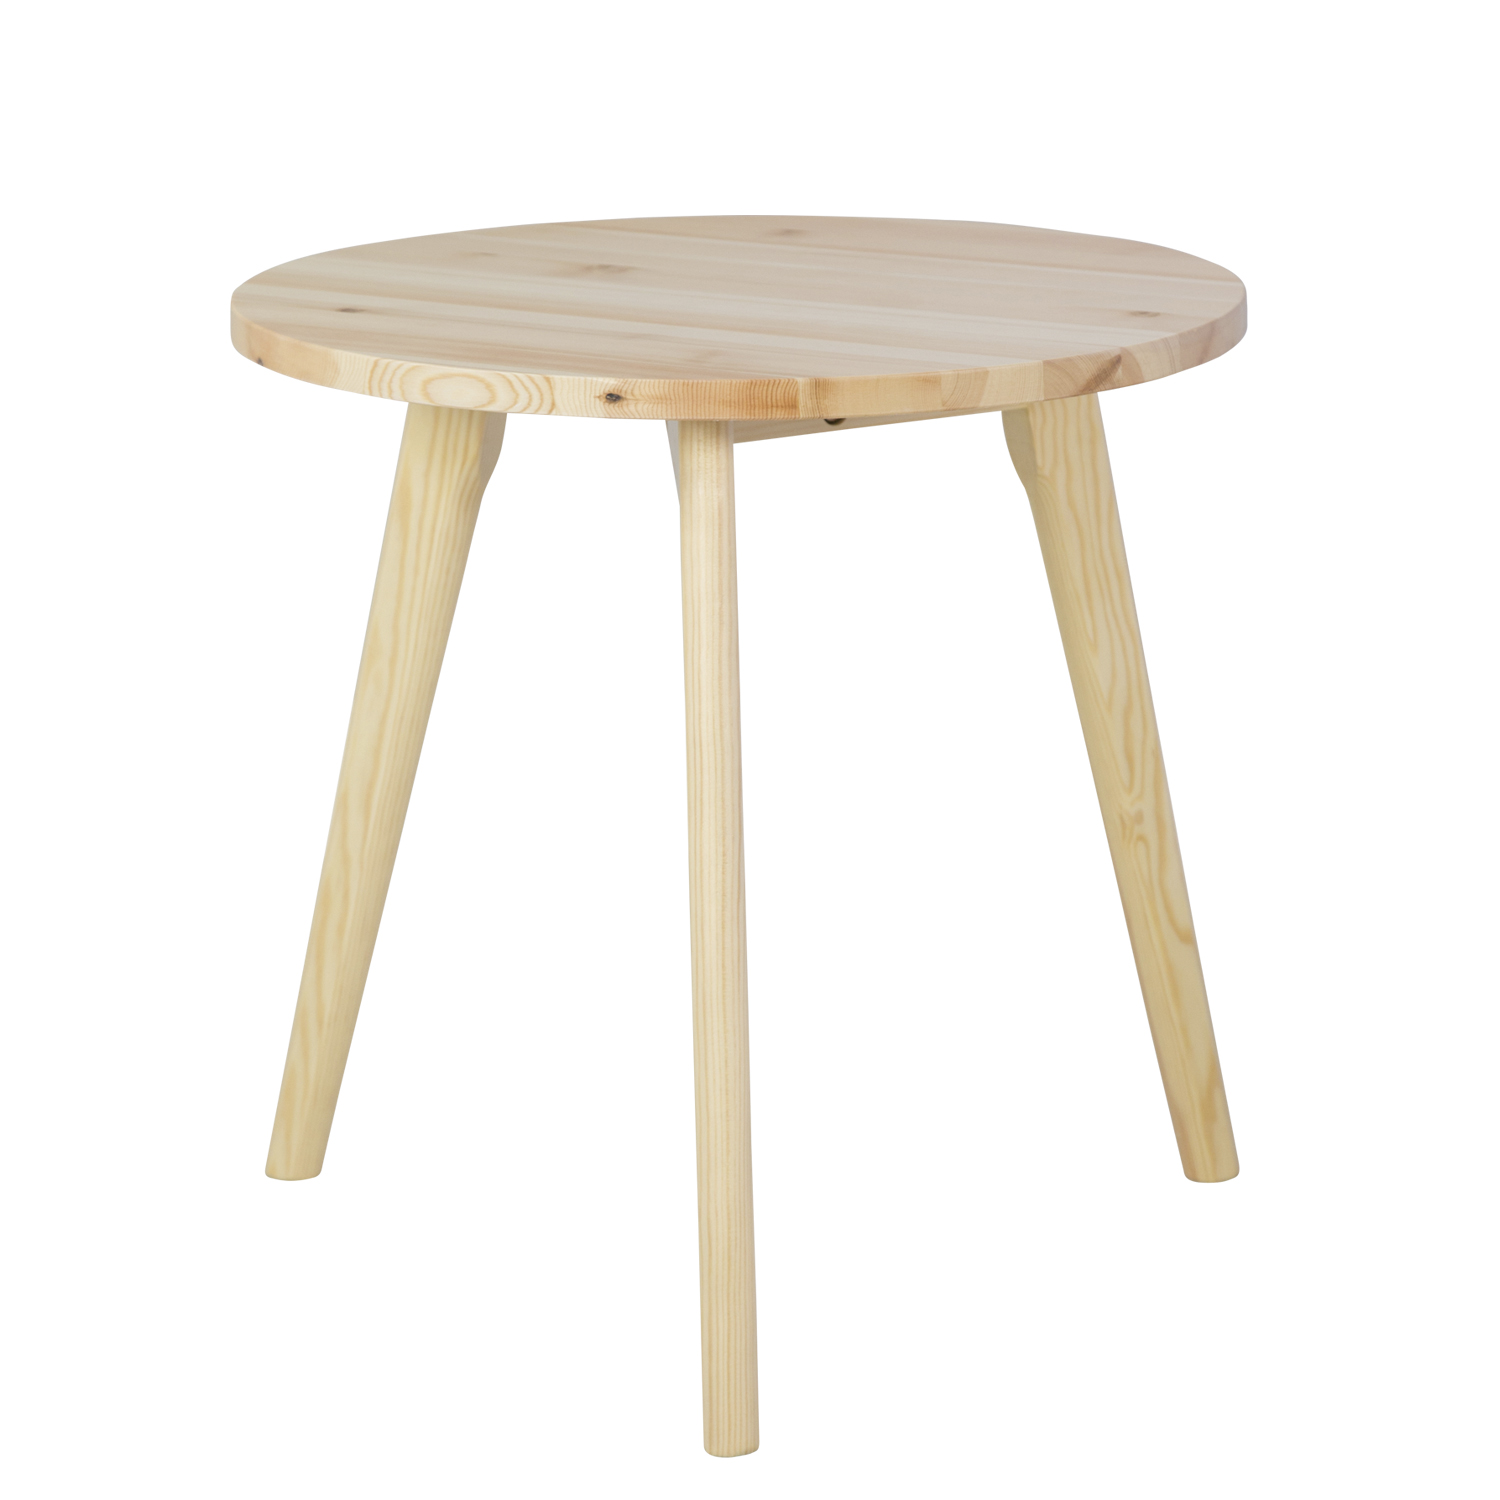 Petites Tables Basses De Salon Détails Sur Table Basse Petite Table Ronde Bois Naturel 45 Cm Table De Chevet Table De Salon